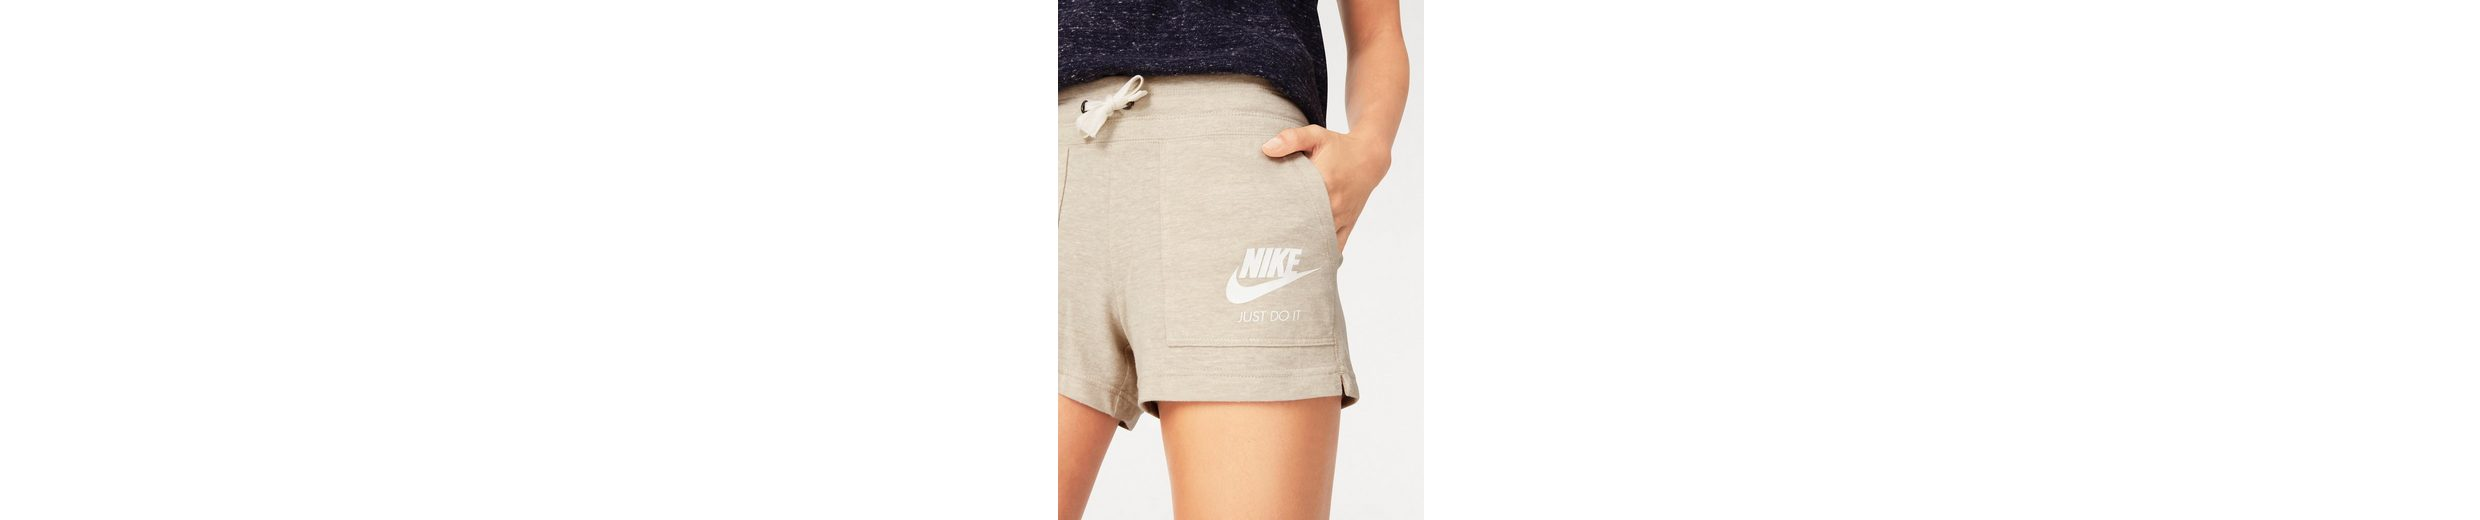 Nike Shorts VINTAGE WOMEN GYM NSW NSW Sportswear WOMEN SHORT Sportswear GYM Shorts Nike VINTAGE Rwtq66Xn